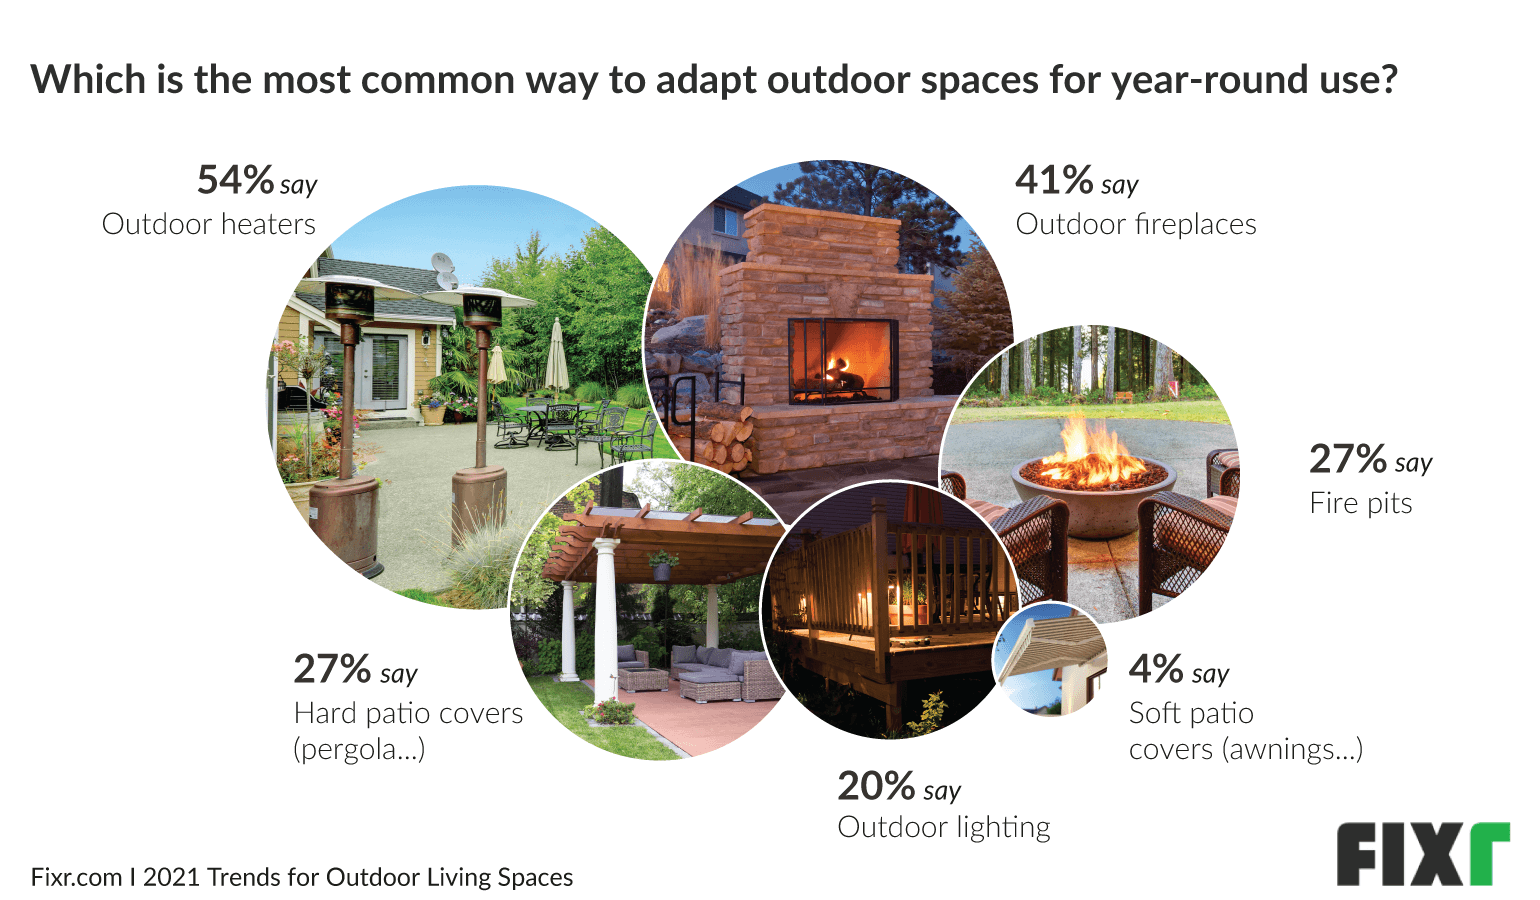 Outdoor heaters and outdoor fireplaces top the list of outdoor living trends 2021 for year-round use